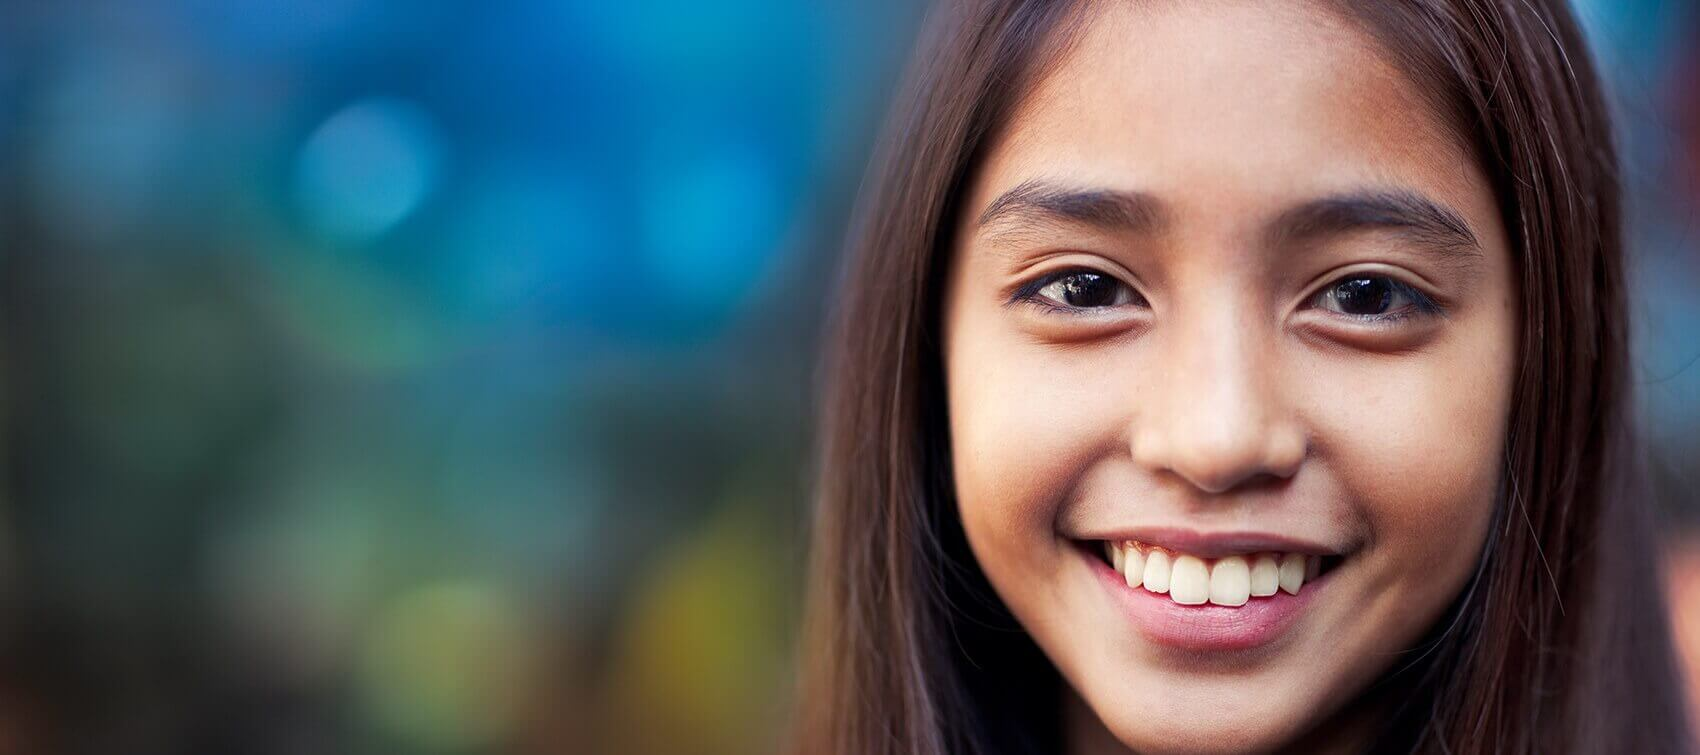 young girl with a bright, white smile